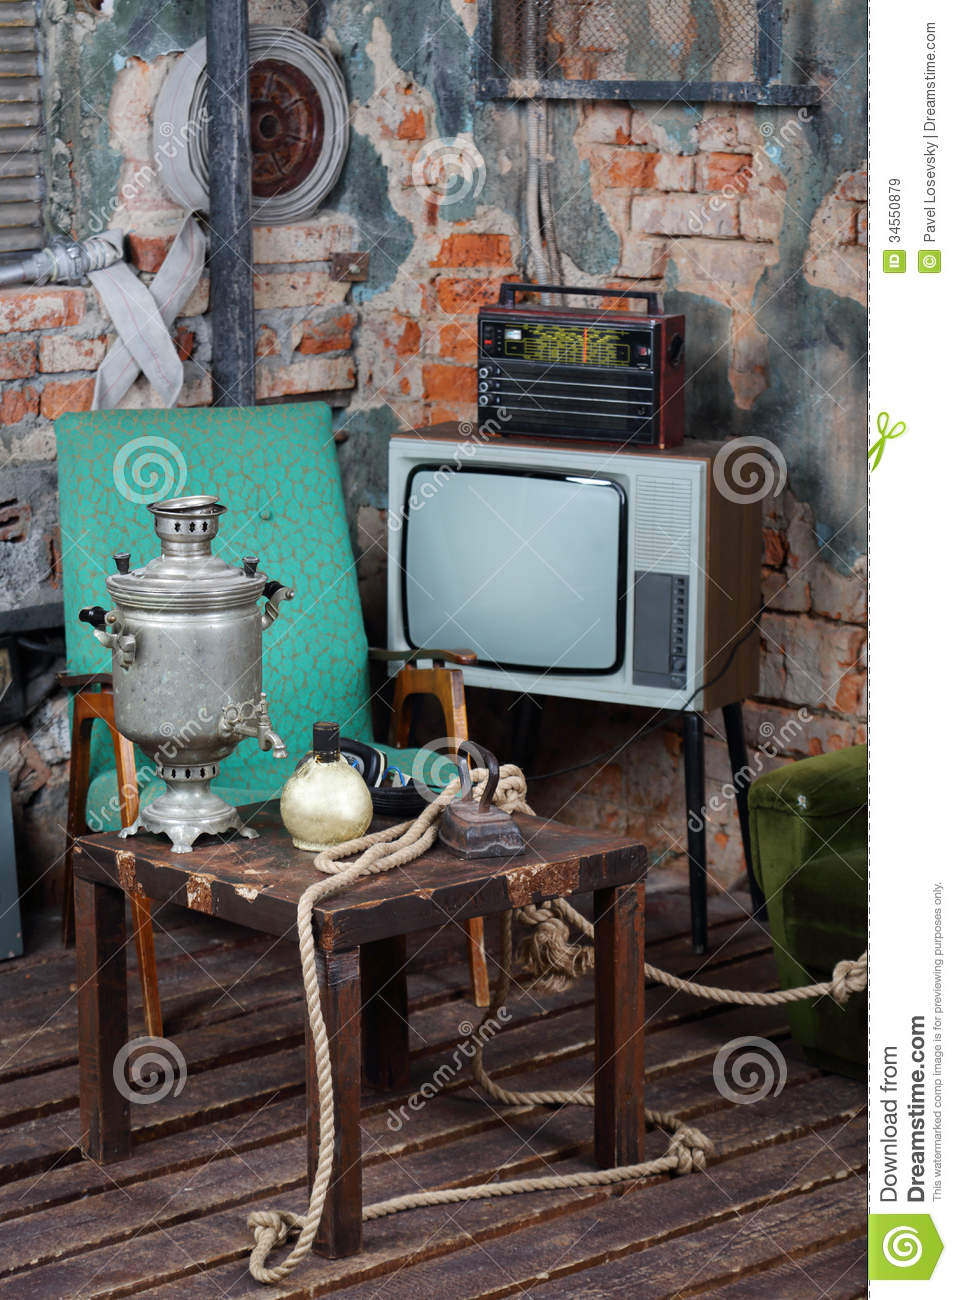 Old television,...